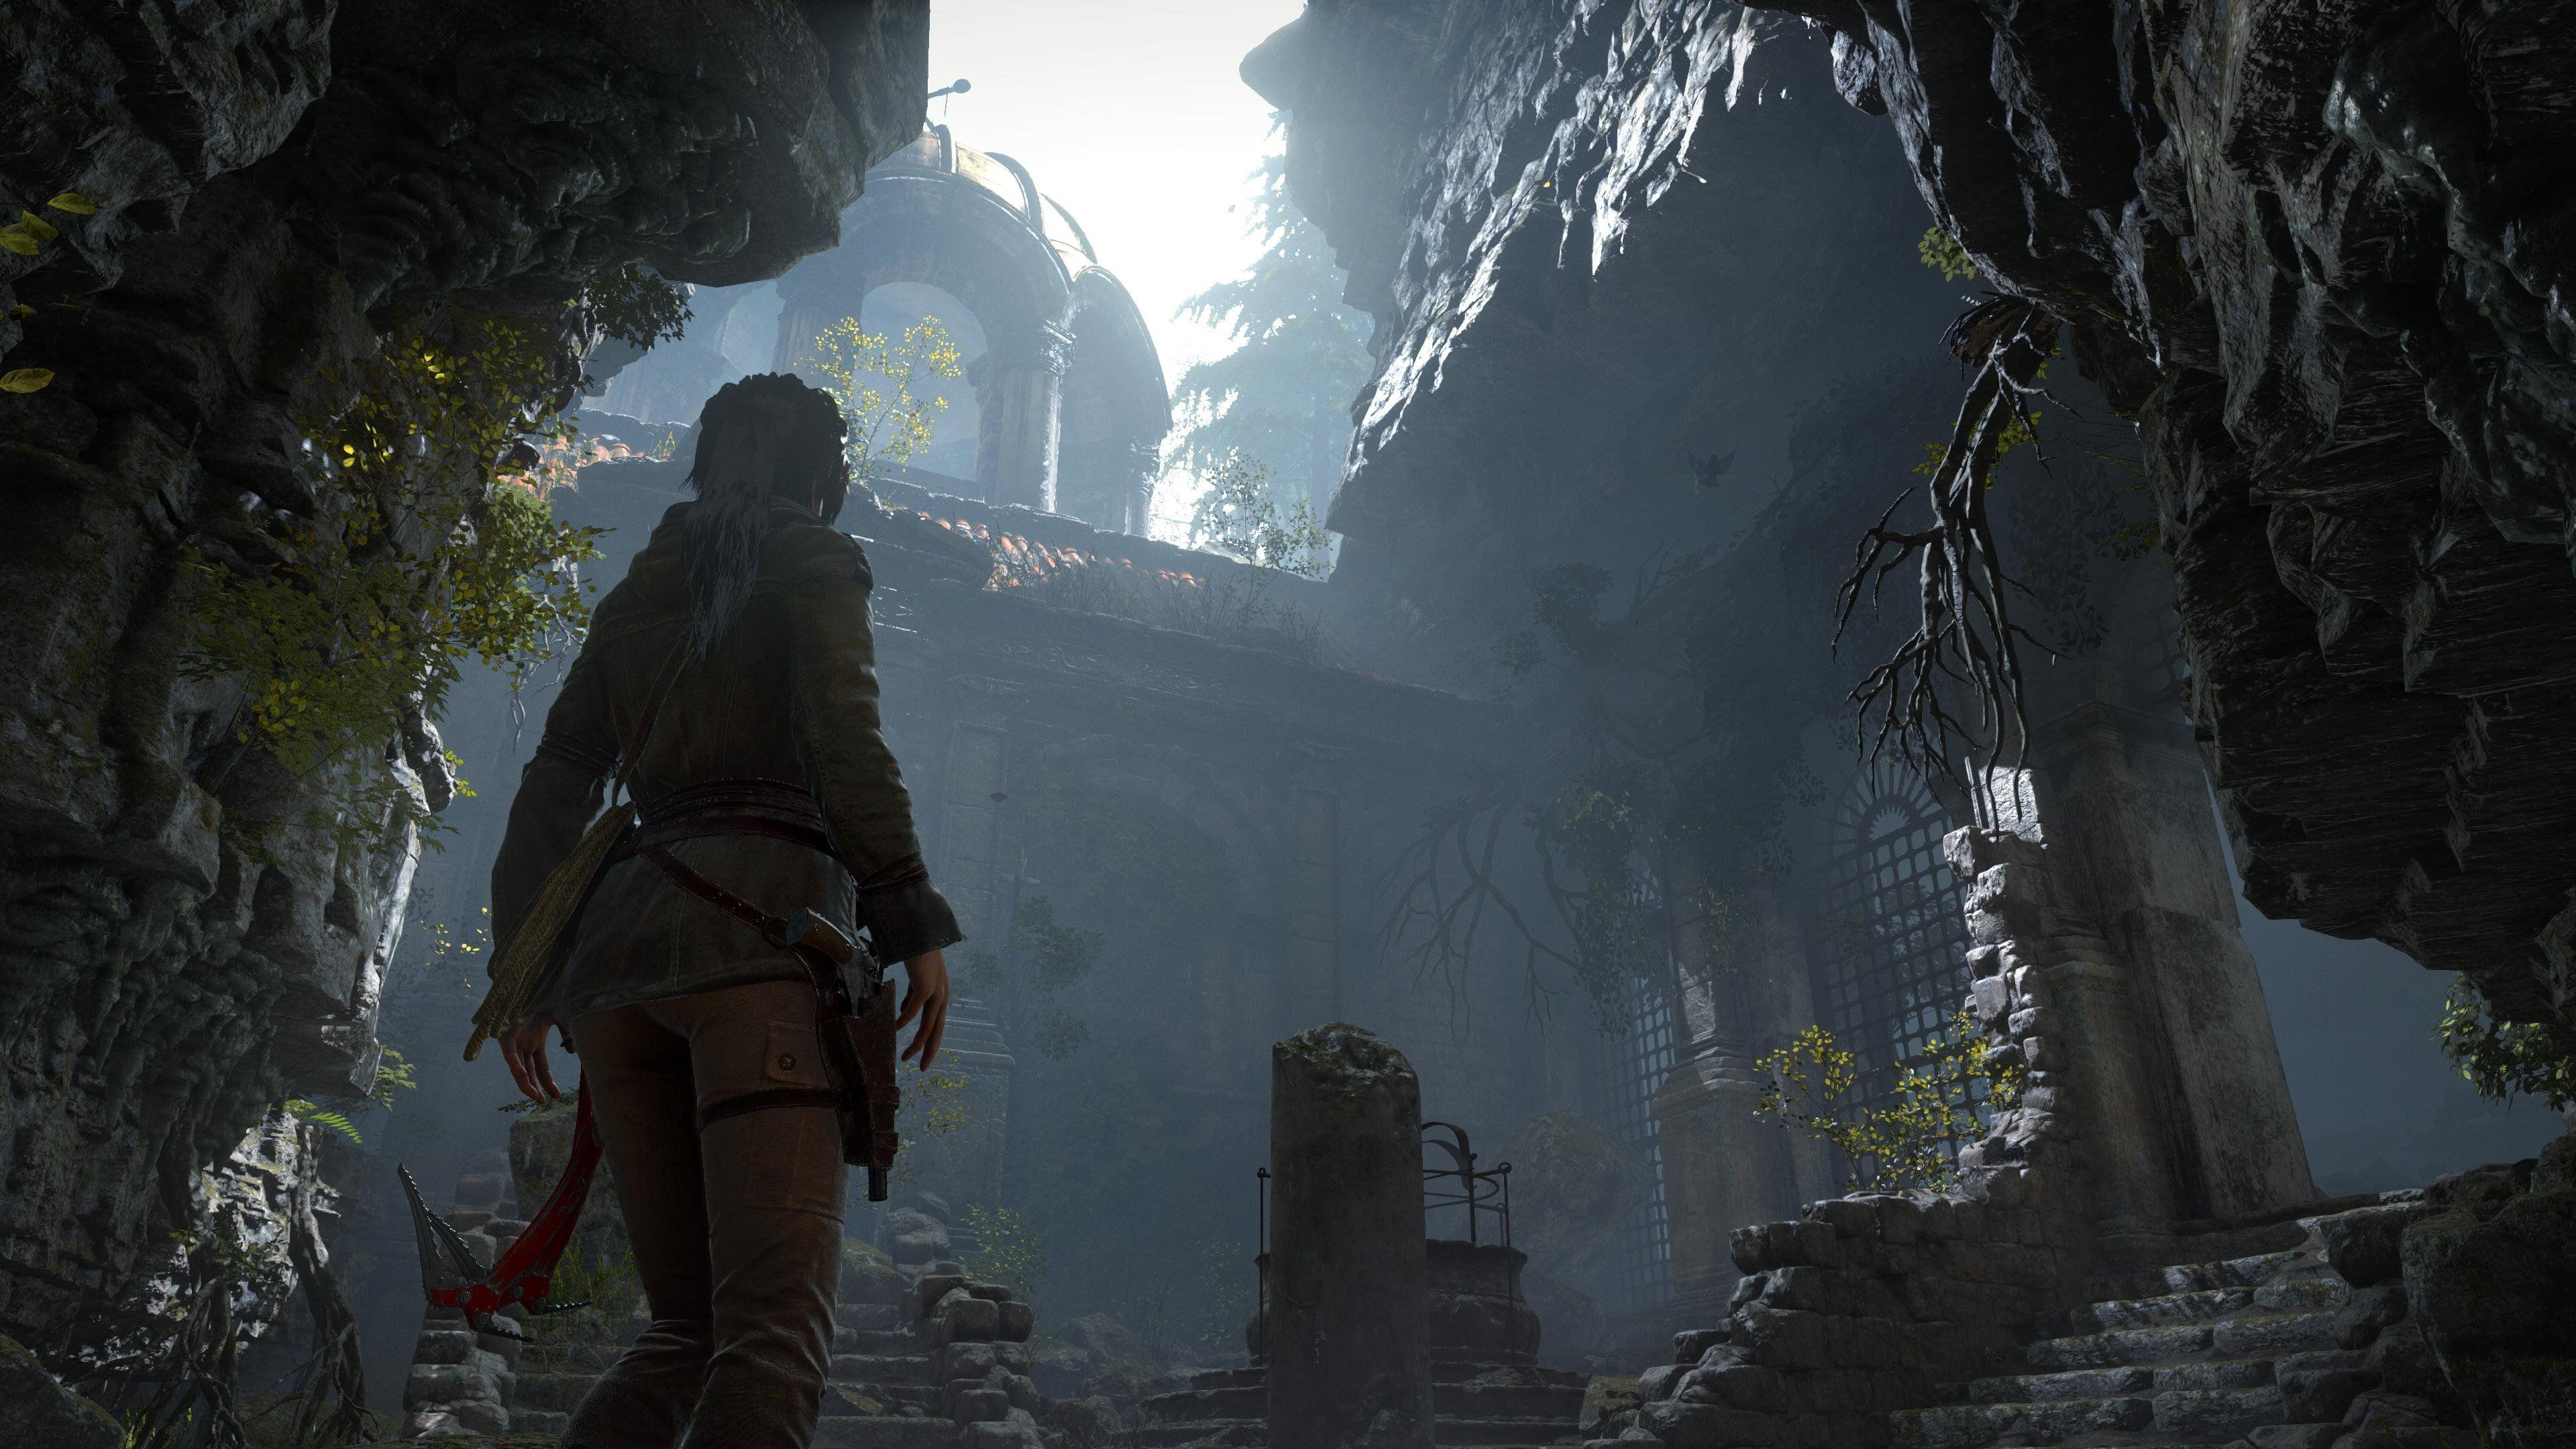 Tomb raider 2016 android wallpapers wallpaper cave - Rise of the tomb raider 4k wallpaper ...